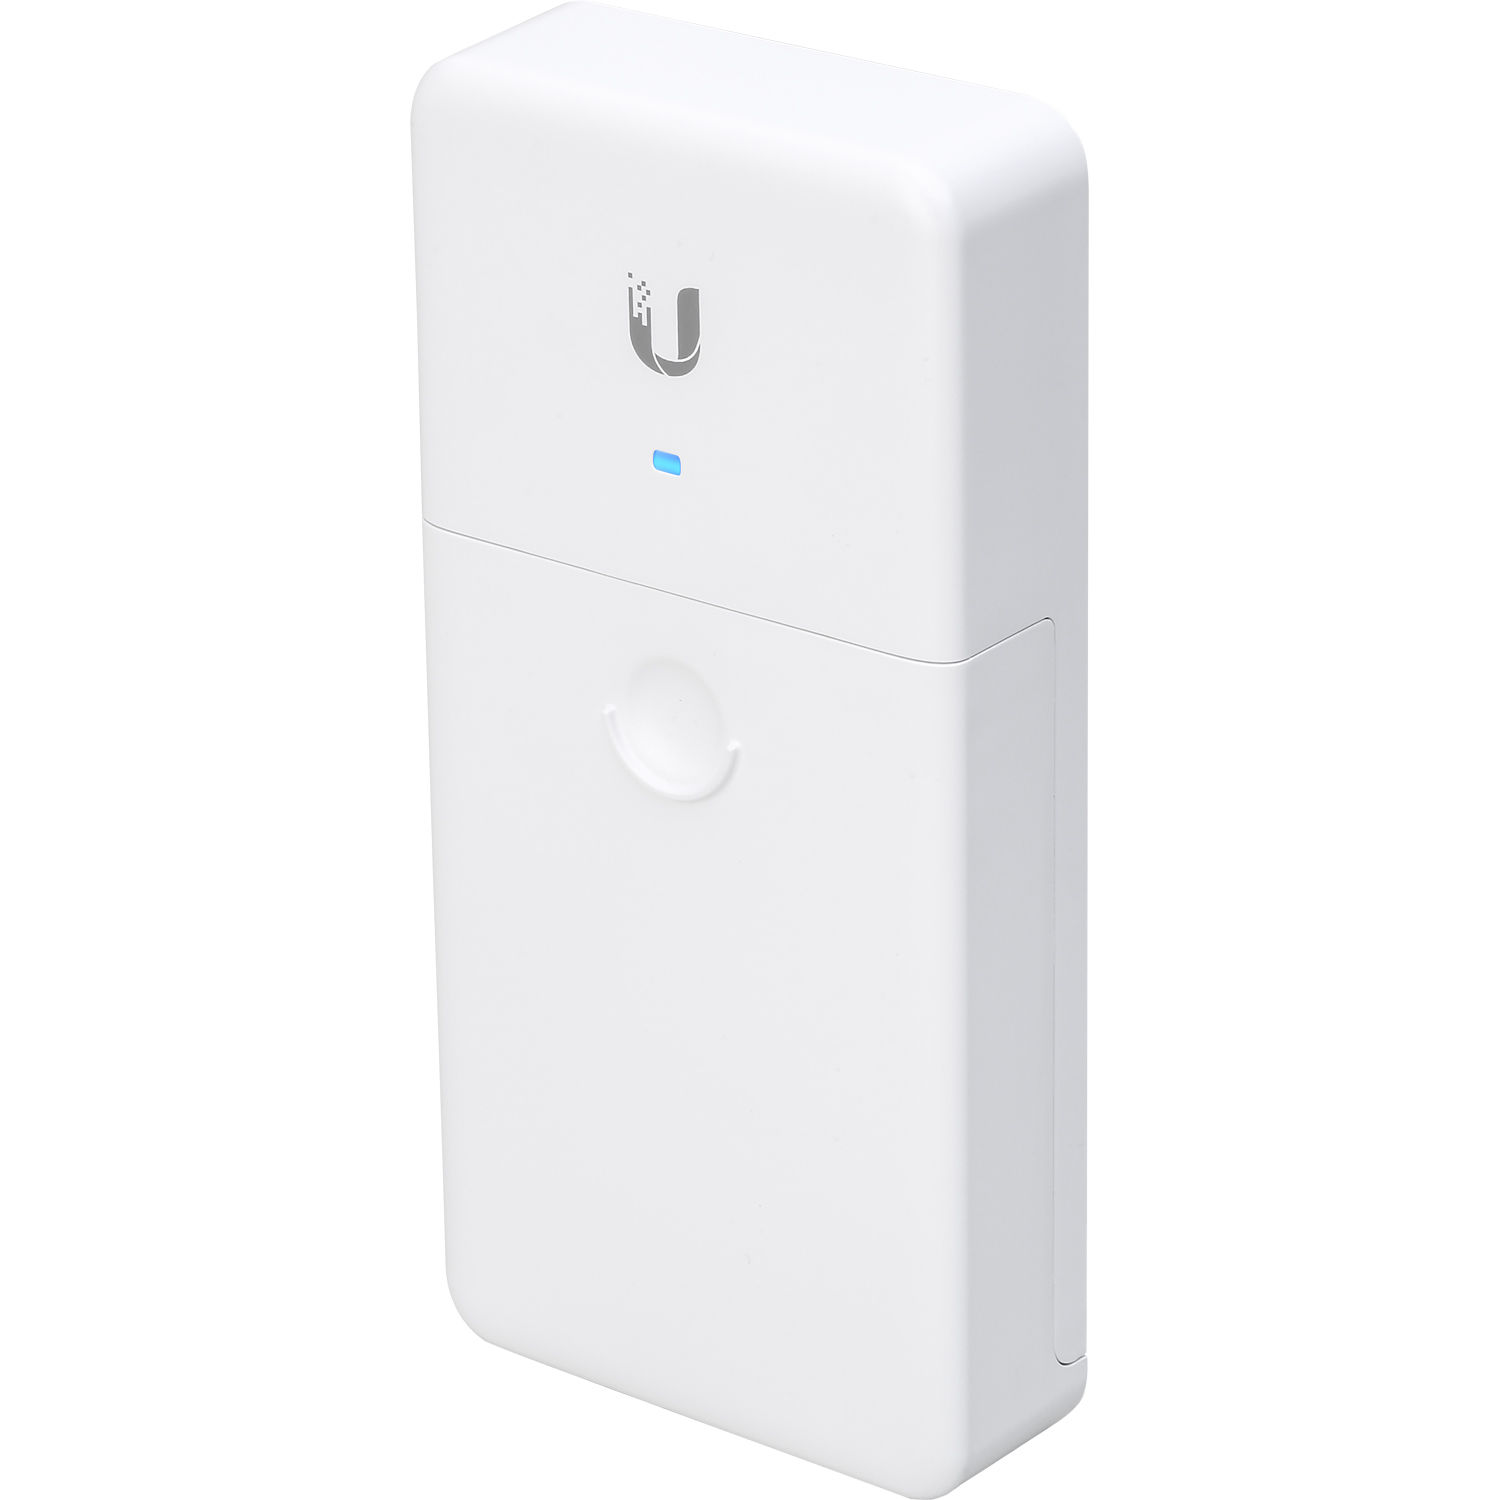 Ubiquiti Fiber POE G2 - The Gigabit, Outdoor, FiberPoE connects remote PoE devices and provides data and power using fiber and DC cabling.